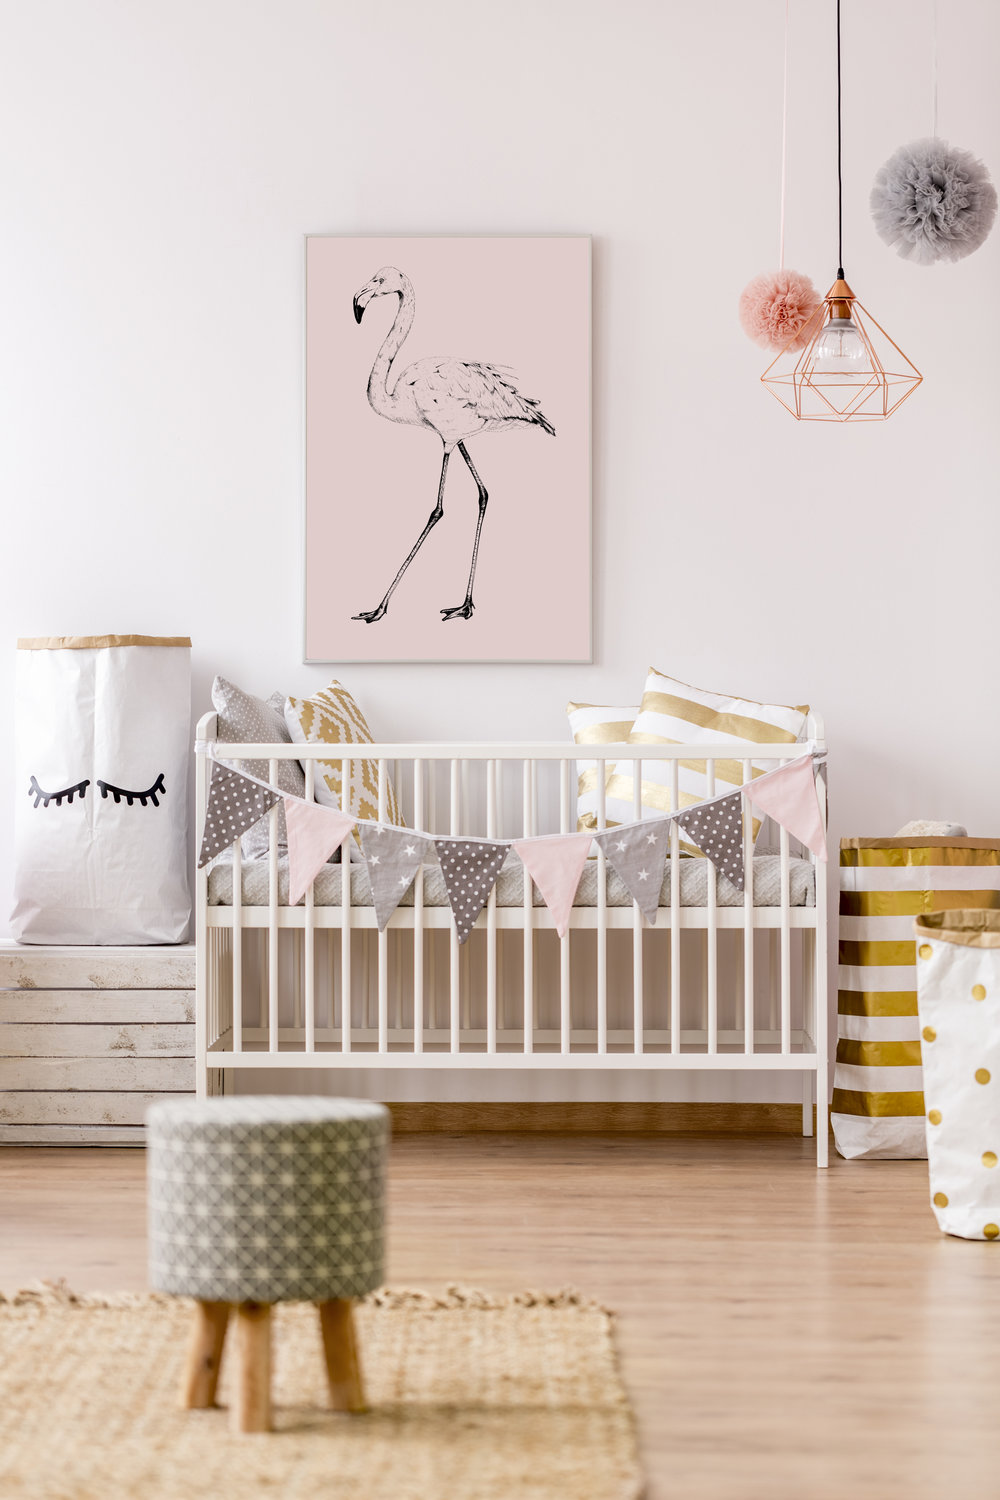 WALL ART - Another great option is nursery decor, we have got you covered when it comes to art prints.